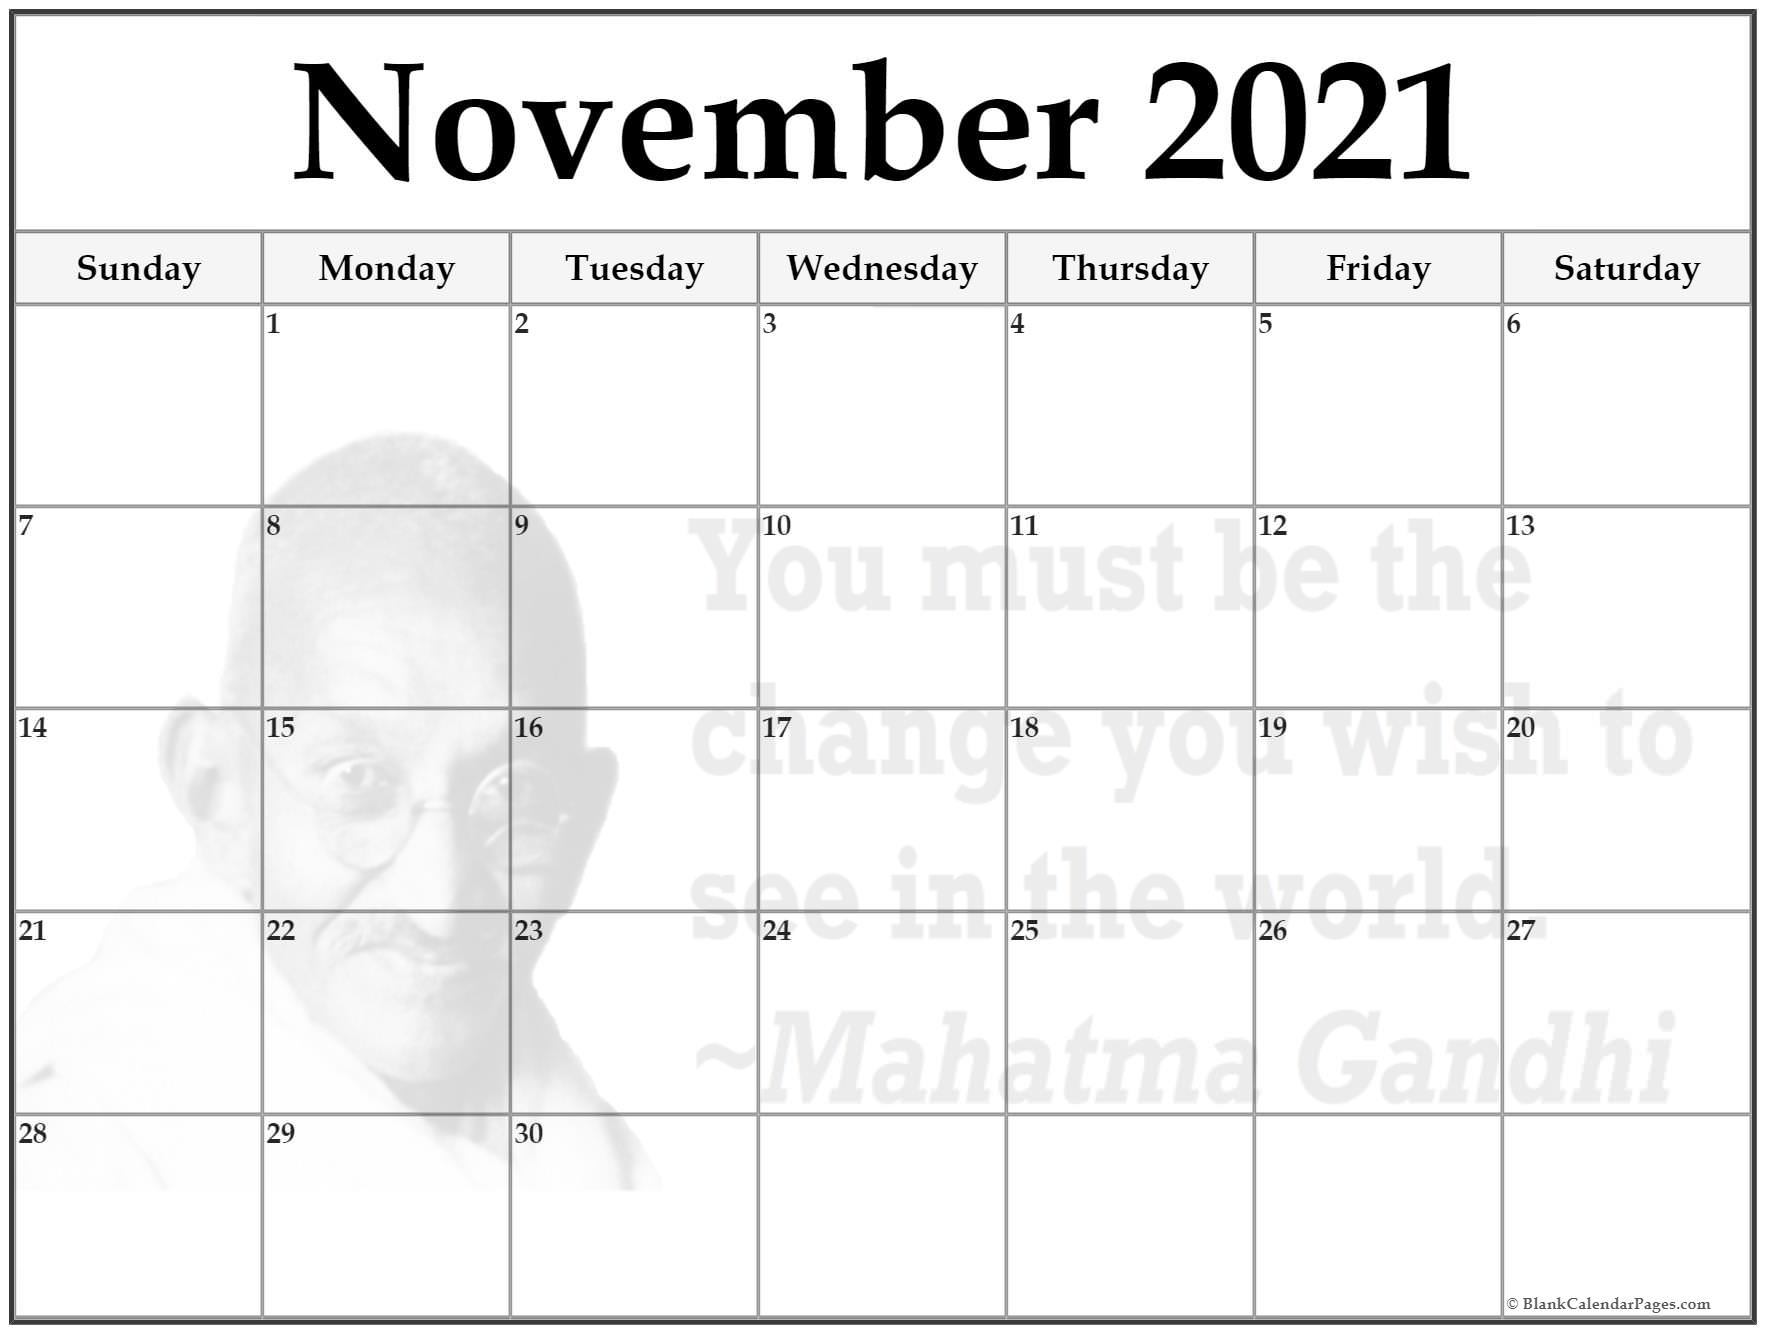 November 2019 monthly calendar template. You must be the change you wish to see in the world. ~Mahatma Gandhi